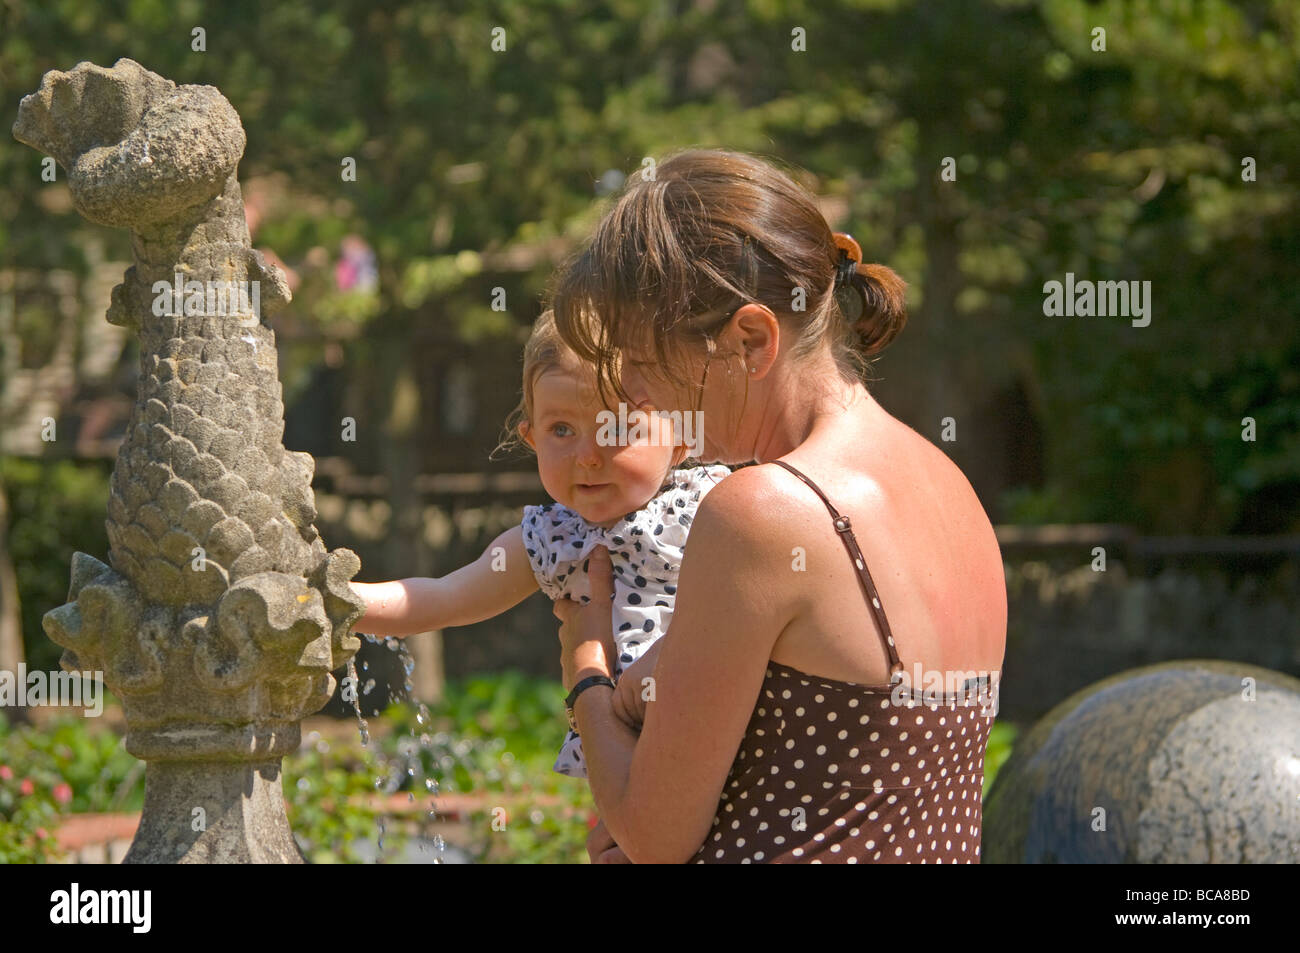 Grandmother and Granddaughter Playing With A Water Fountain - Stock Image